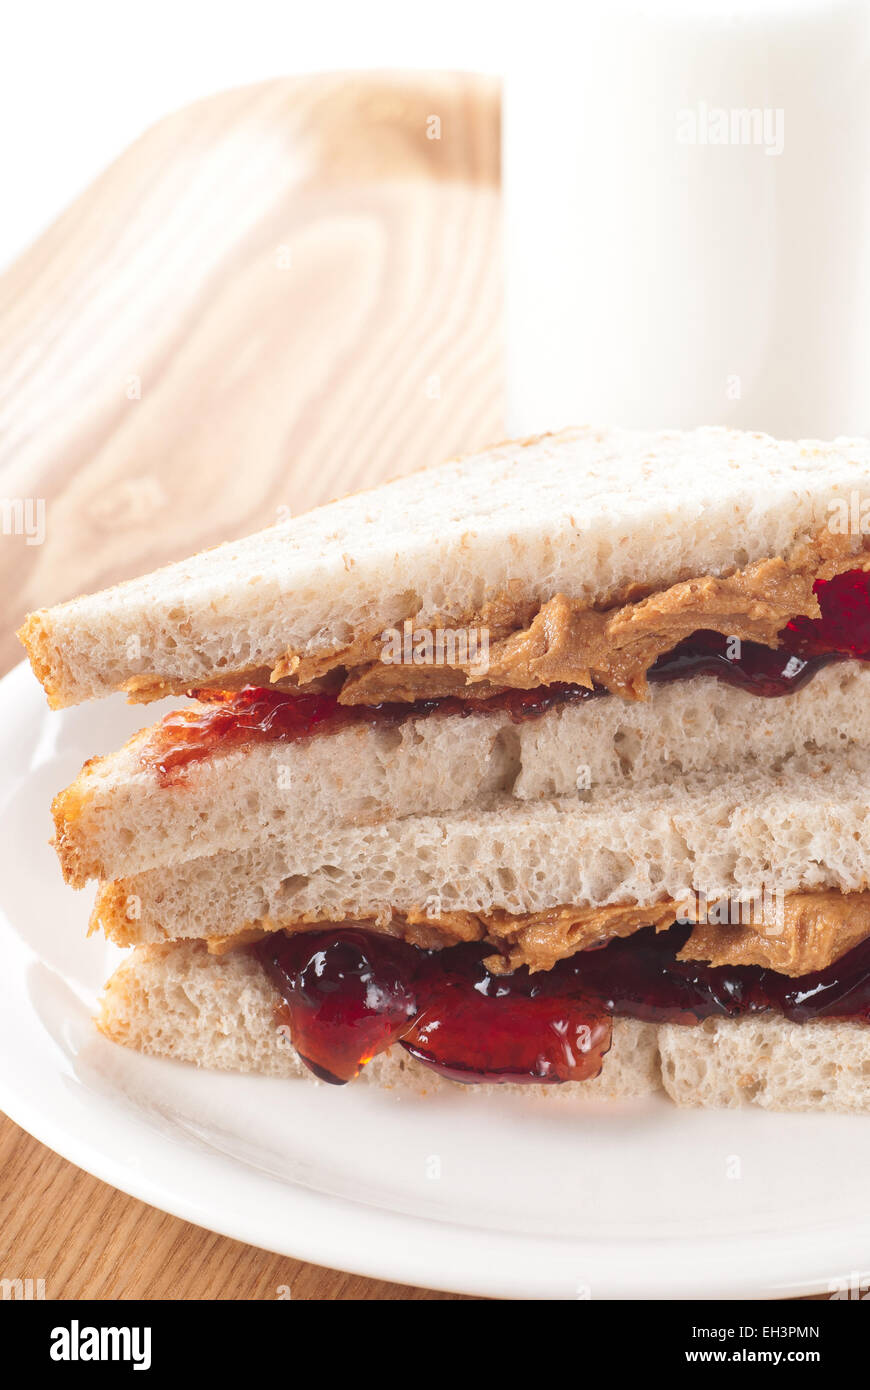 Peanut butter and jelly sandwich with a glass of milk. - Stock Image